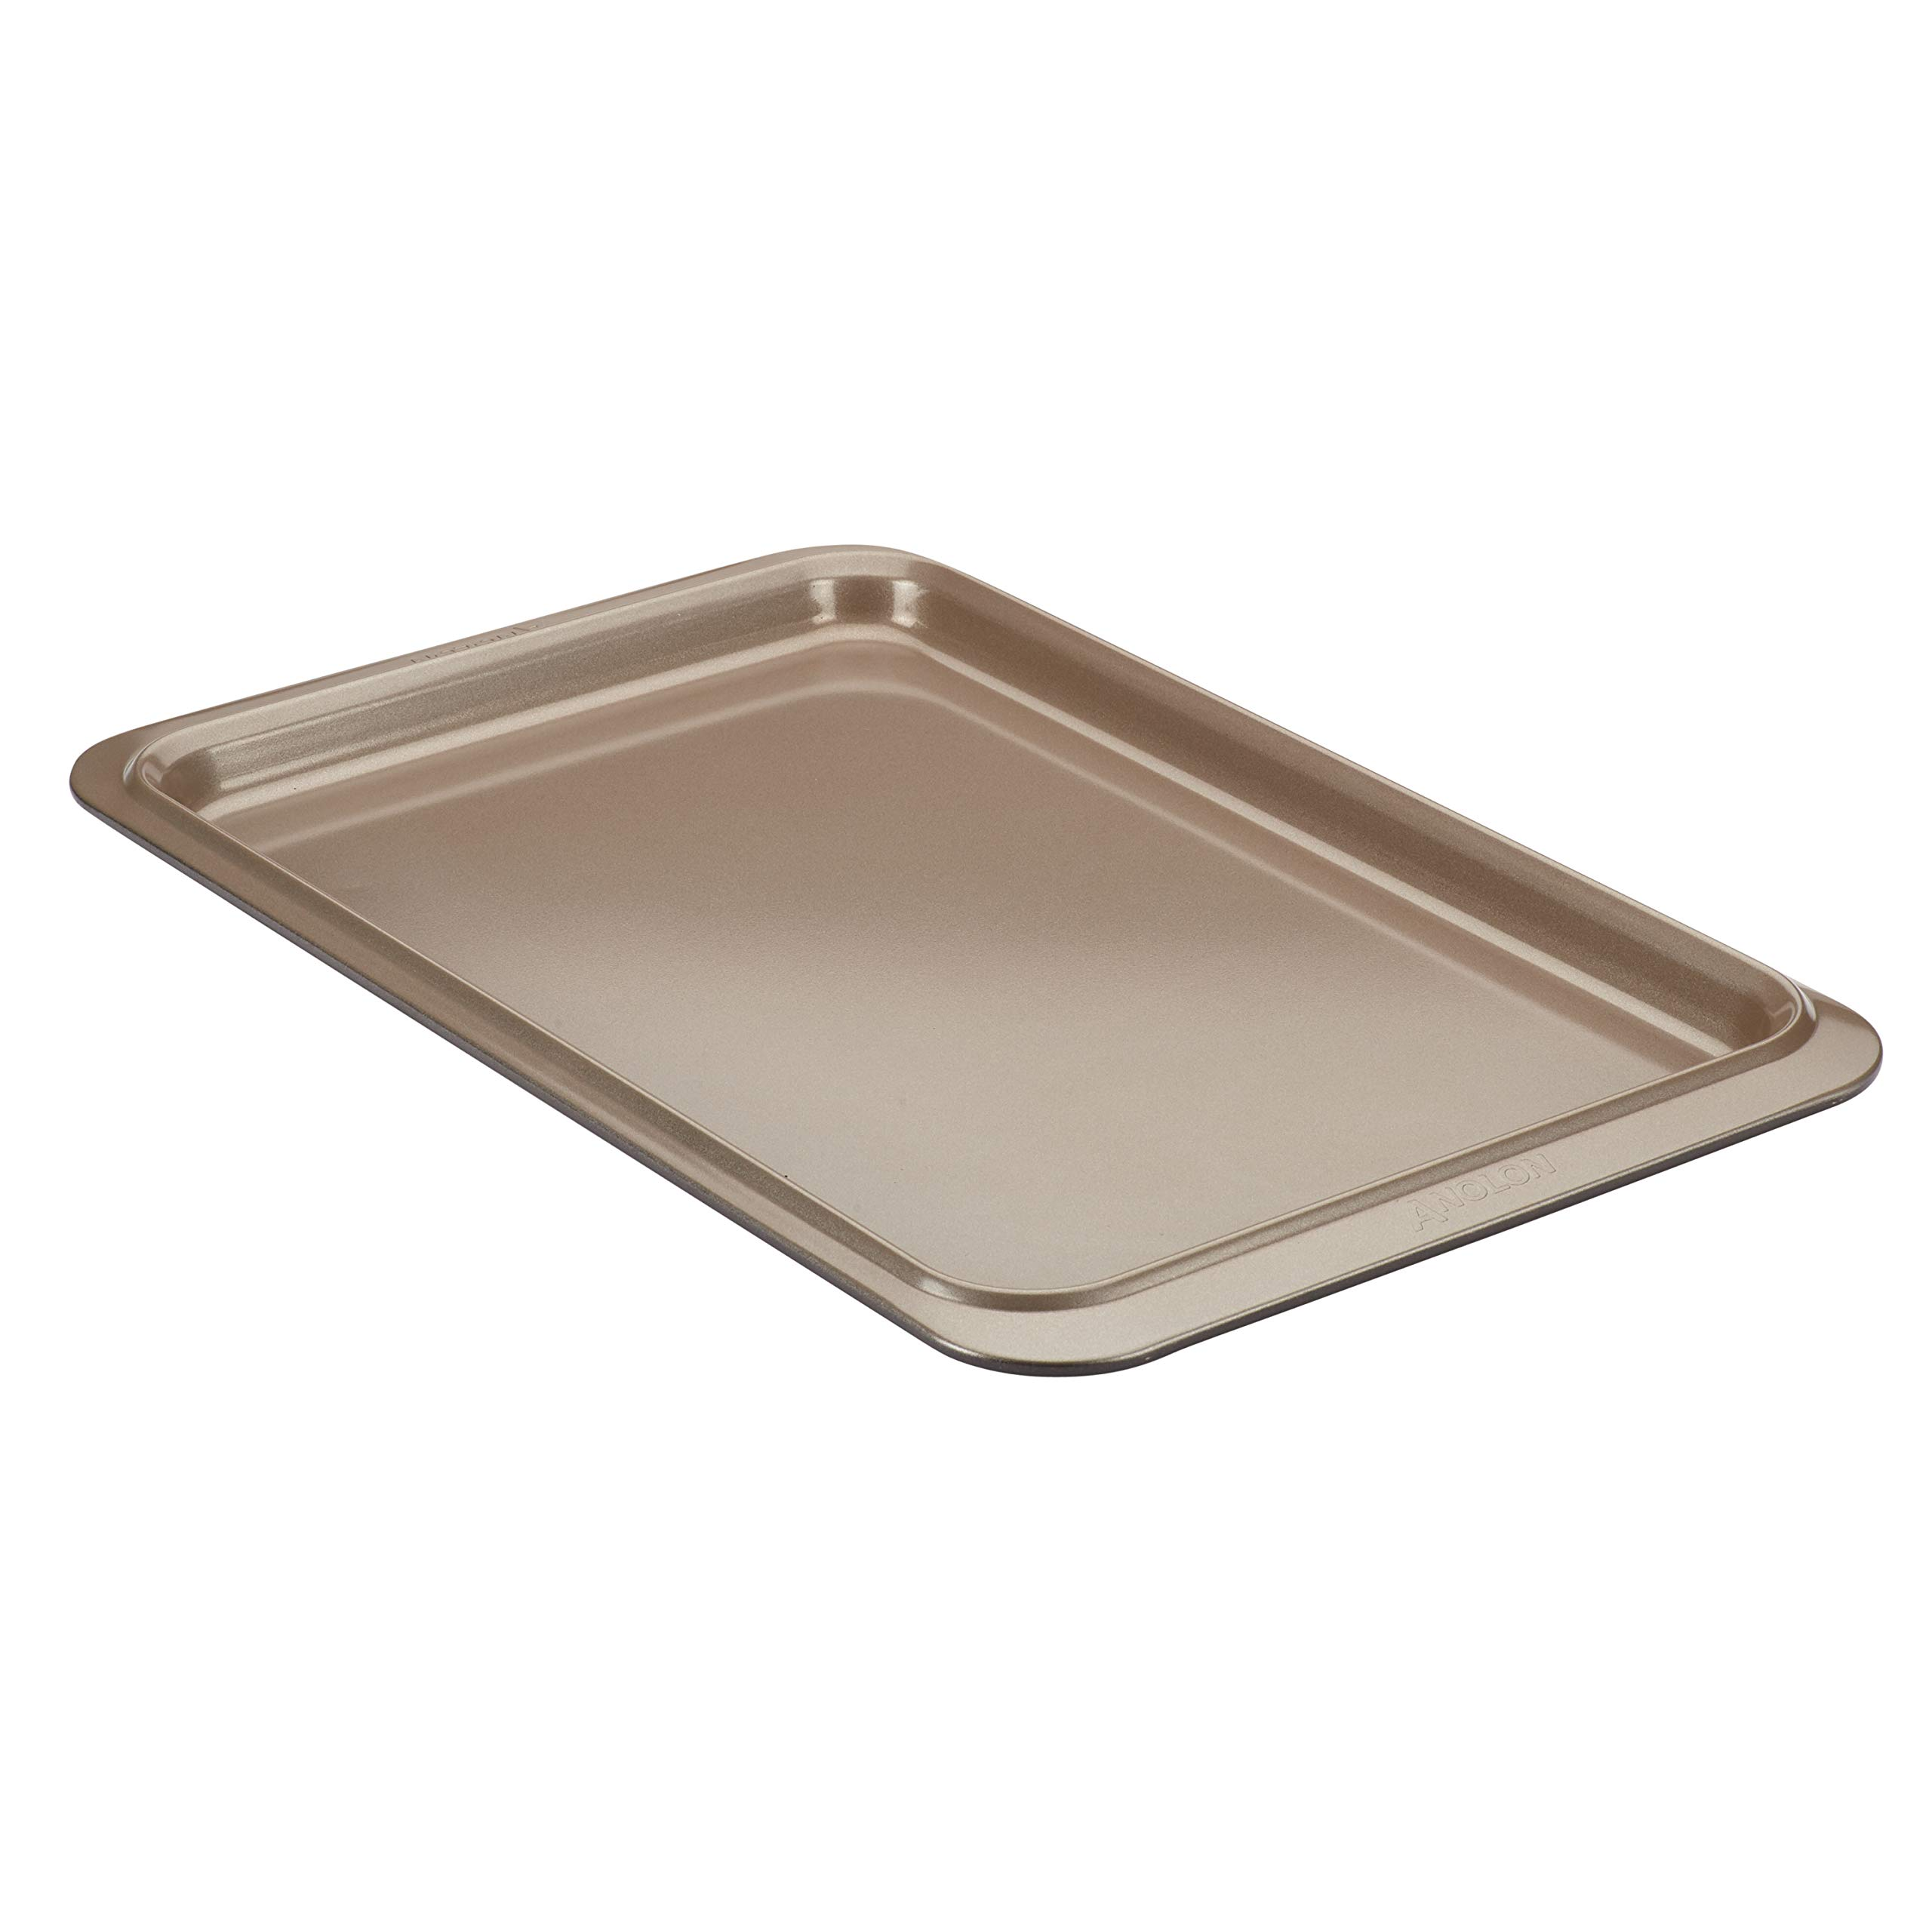 Anolon Eminence Nonstick Bakeware Cookie Pan, 11-Inch x 17-Inch, Onyx with Umber Interior by Anolon (Image #1)